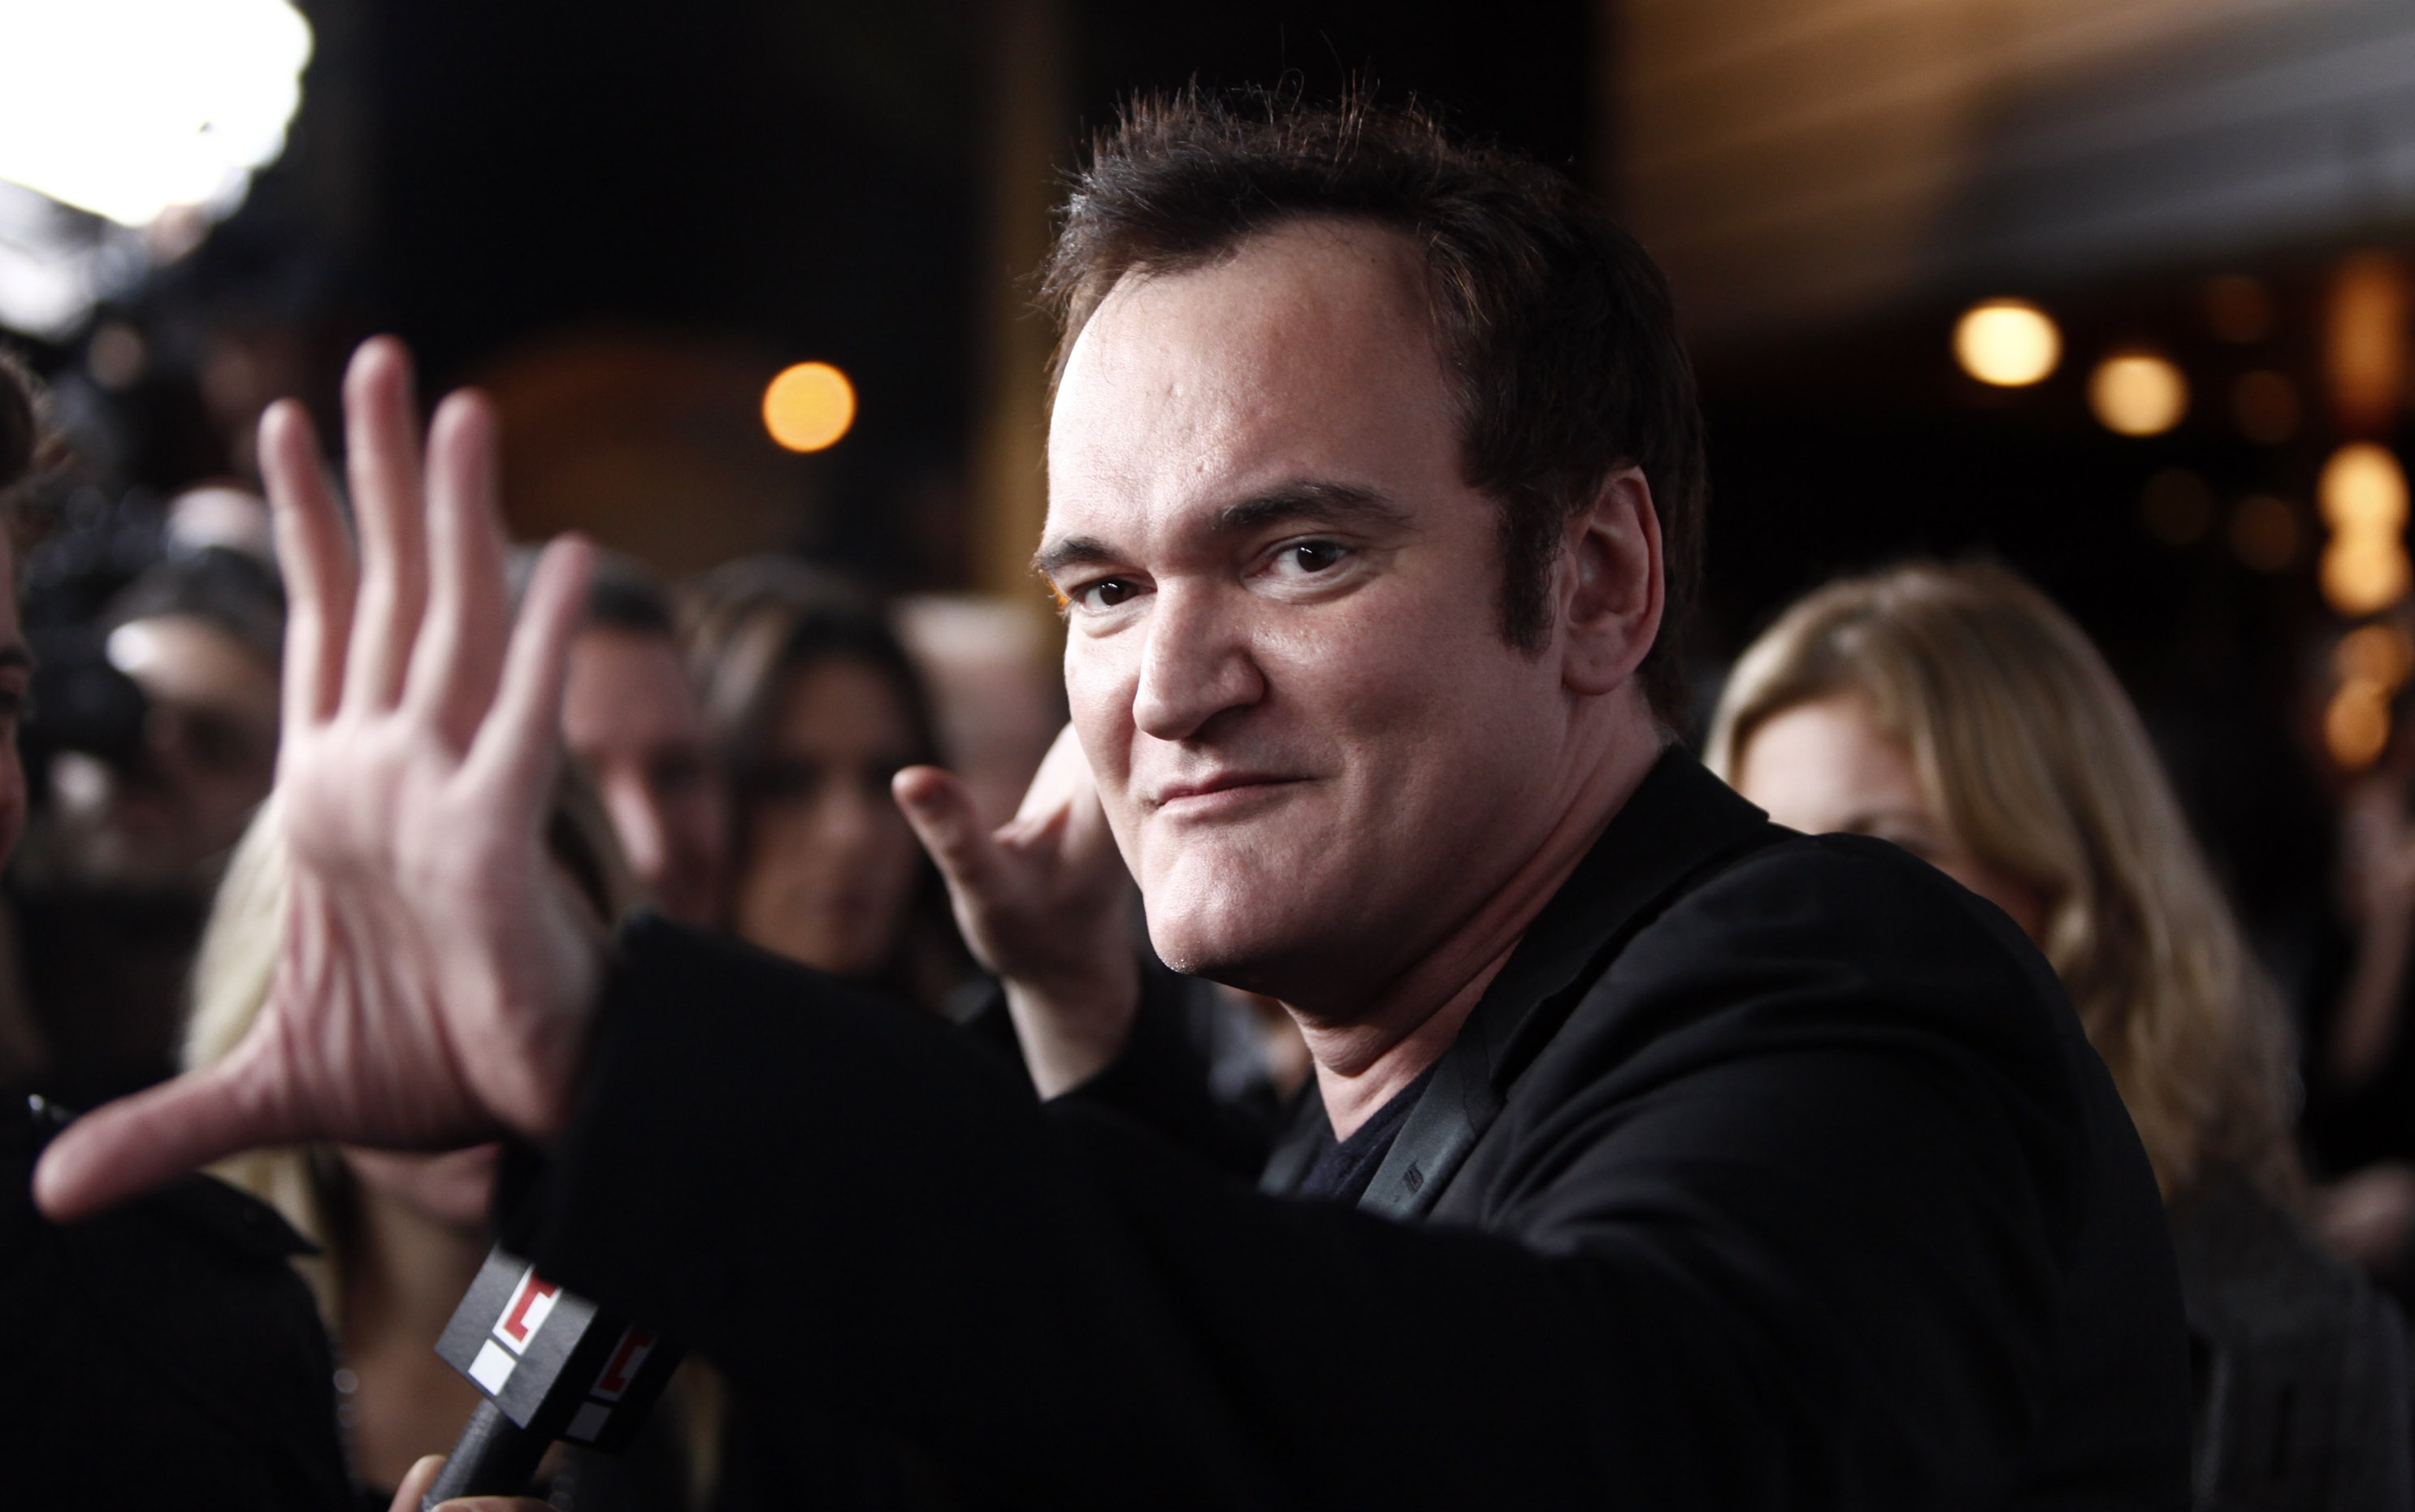 Quentin Tarantino Confirms New Rewritten History Film